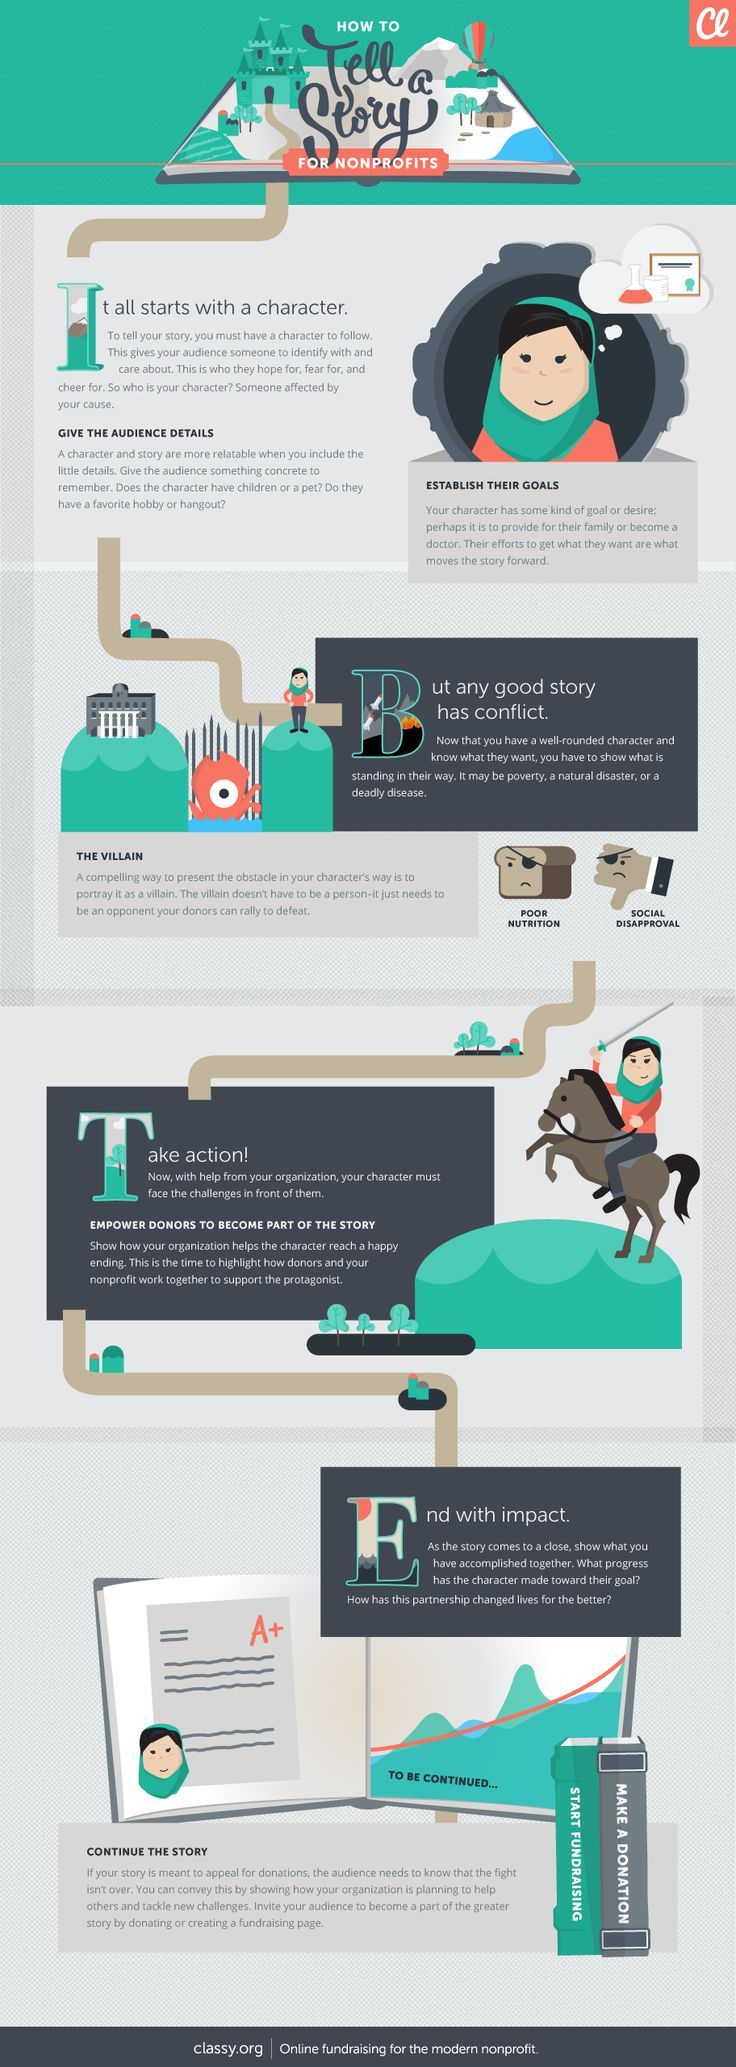 How To Tell a Story for Nonprofits #infographic #Storytelling #HowTo #NonProfit